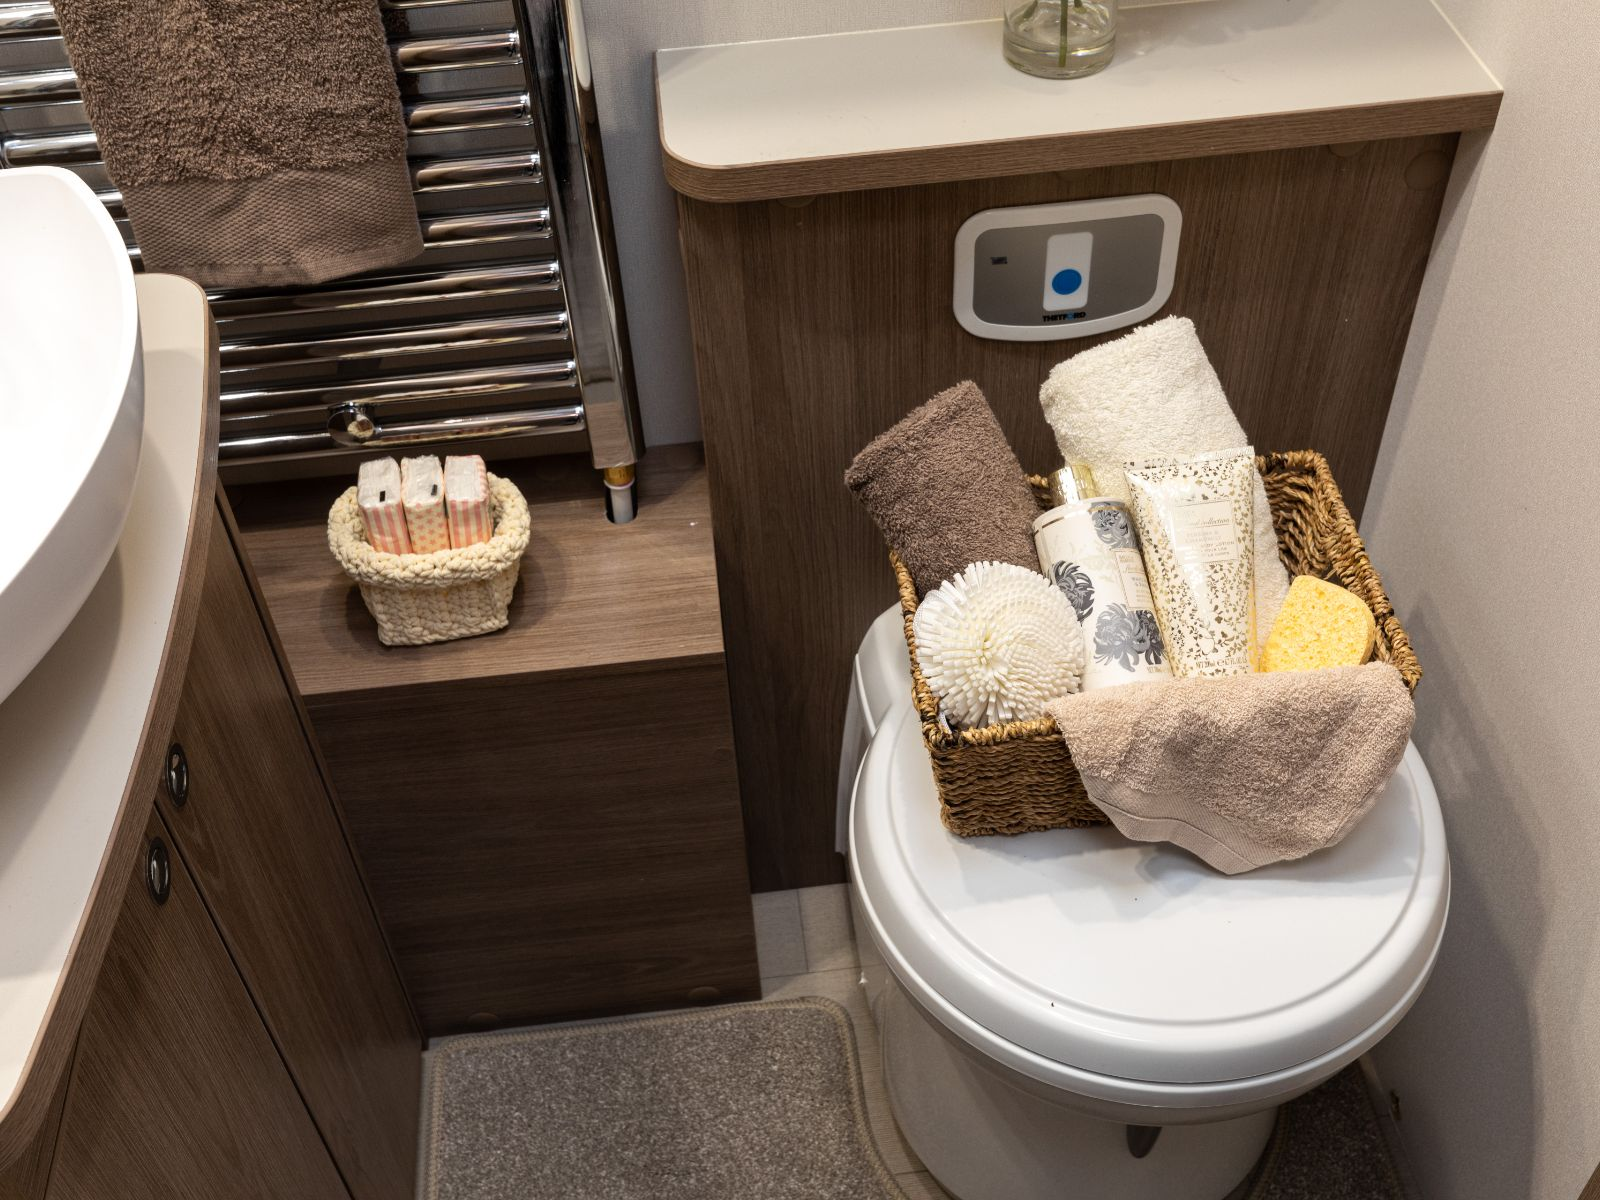 Bathroom layout with heated towel rack and toilet with assortment of toiletries'